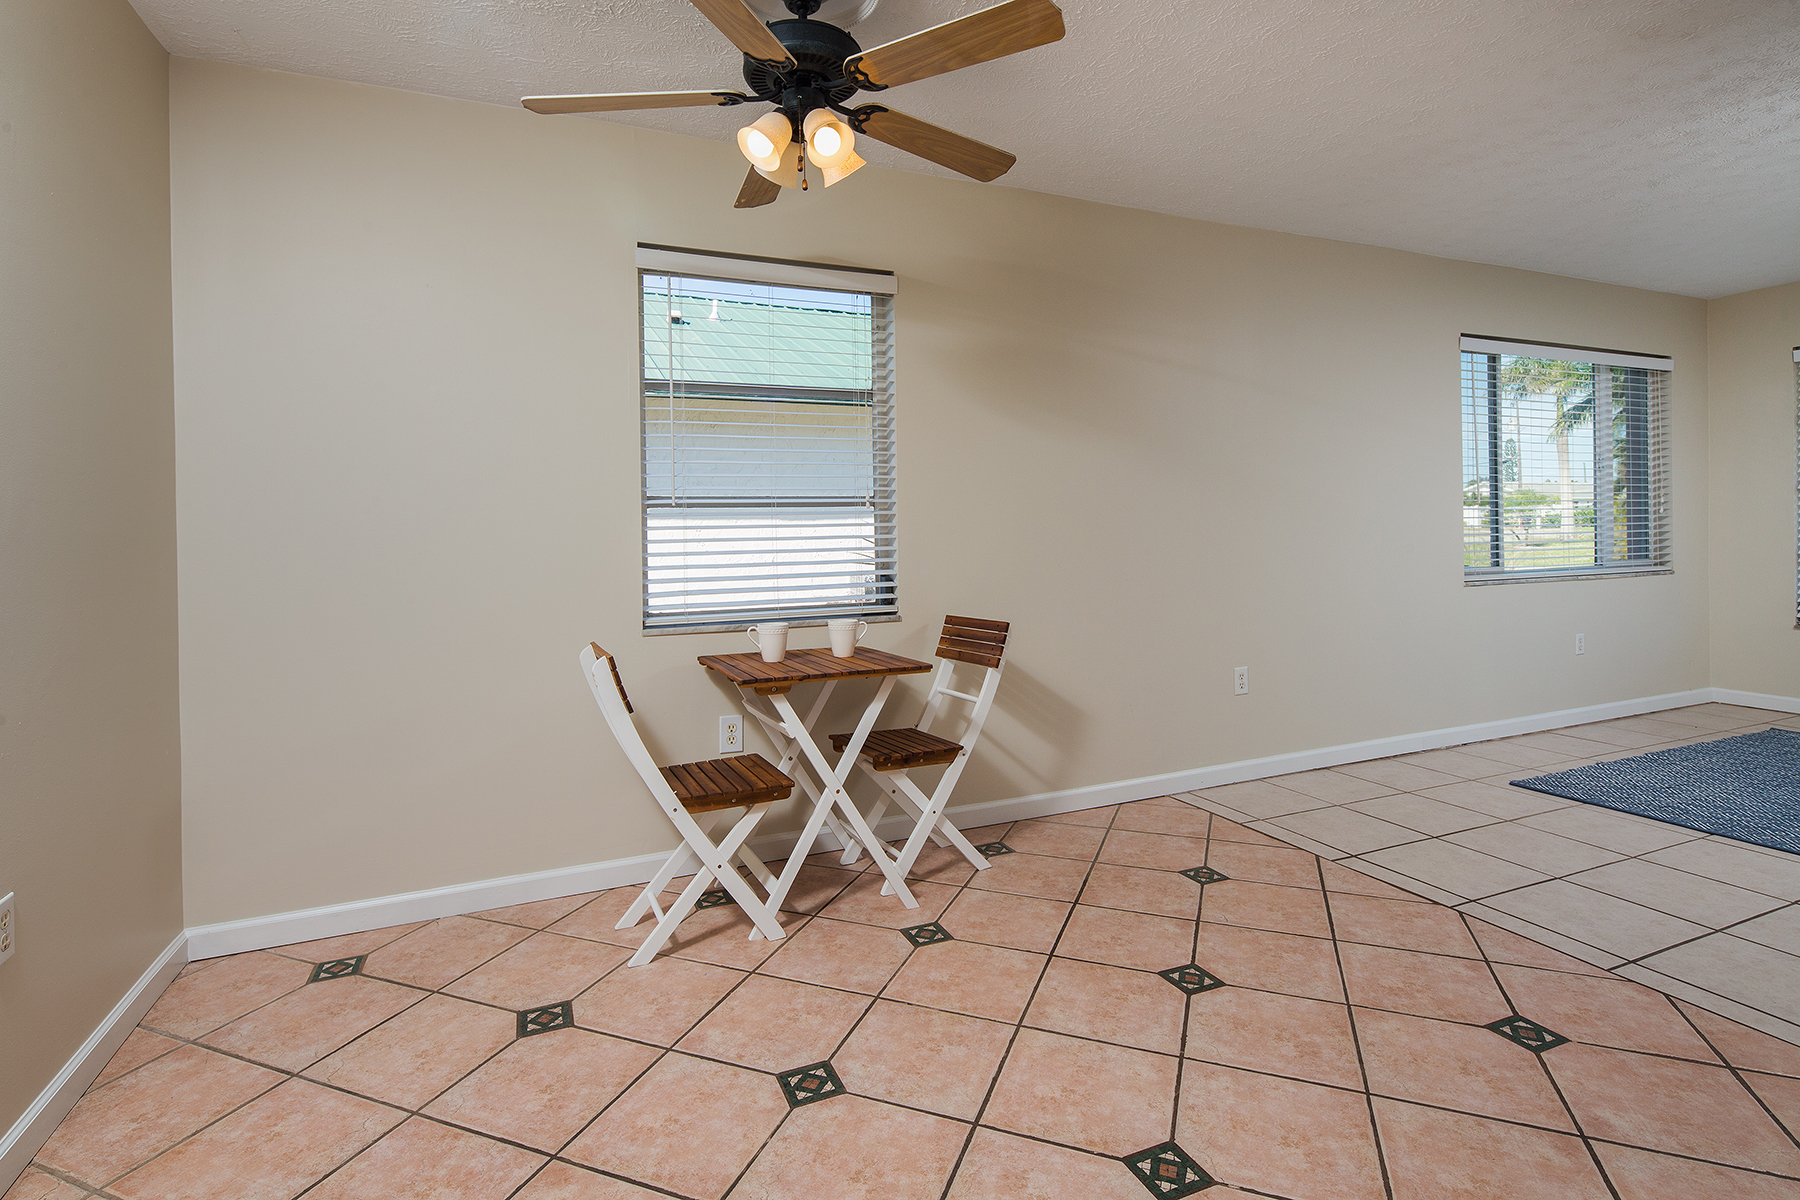 Additional photo for property listing at Naples 706  95th Ave  N,  Naples, Florida 34108 United States